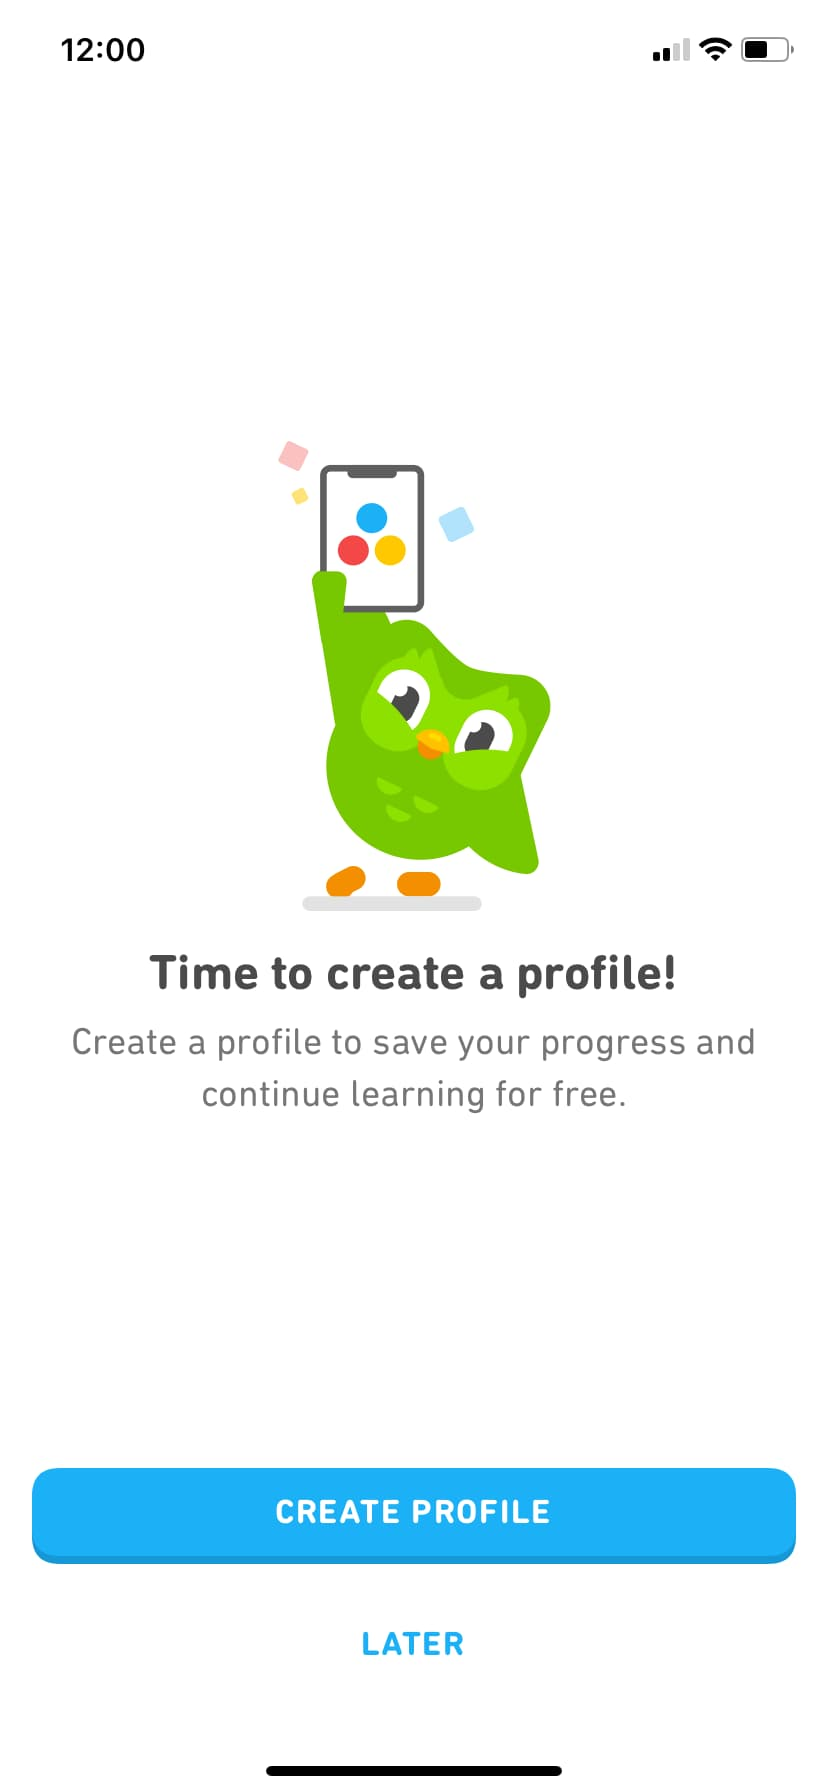 screenshot image of duolingo mobile app. this screen is prompting the user to create an account this is a great example of user onboarding for mobile